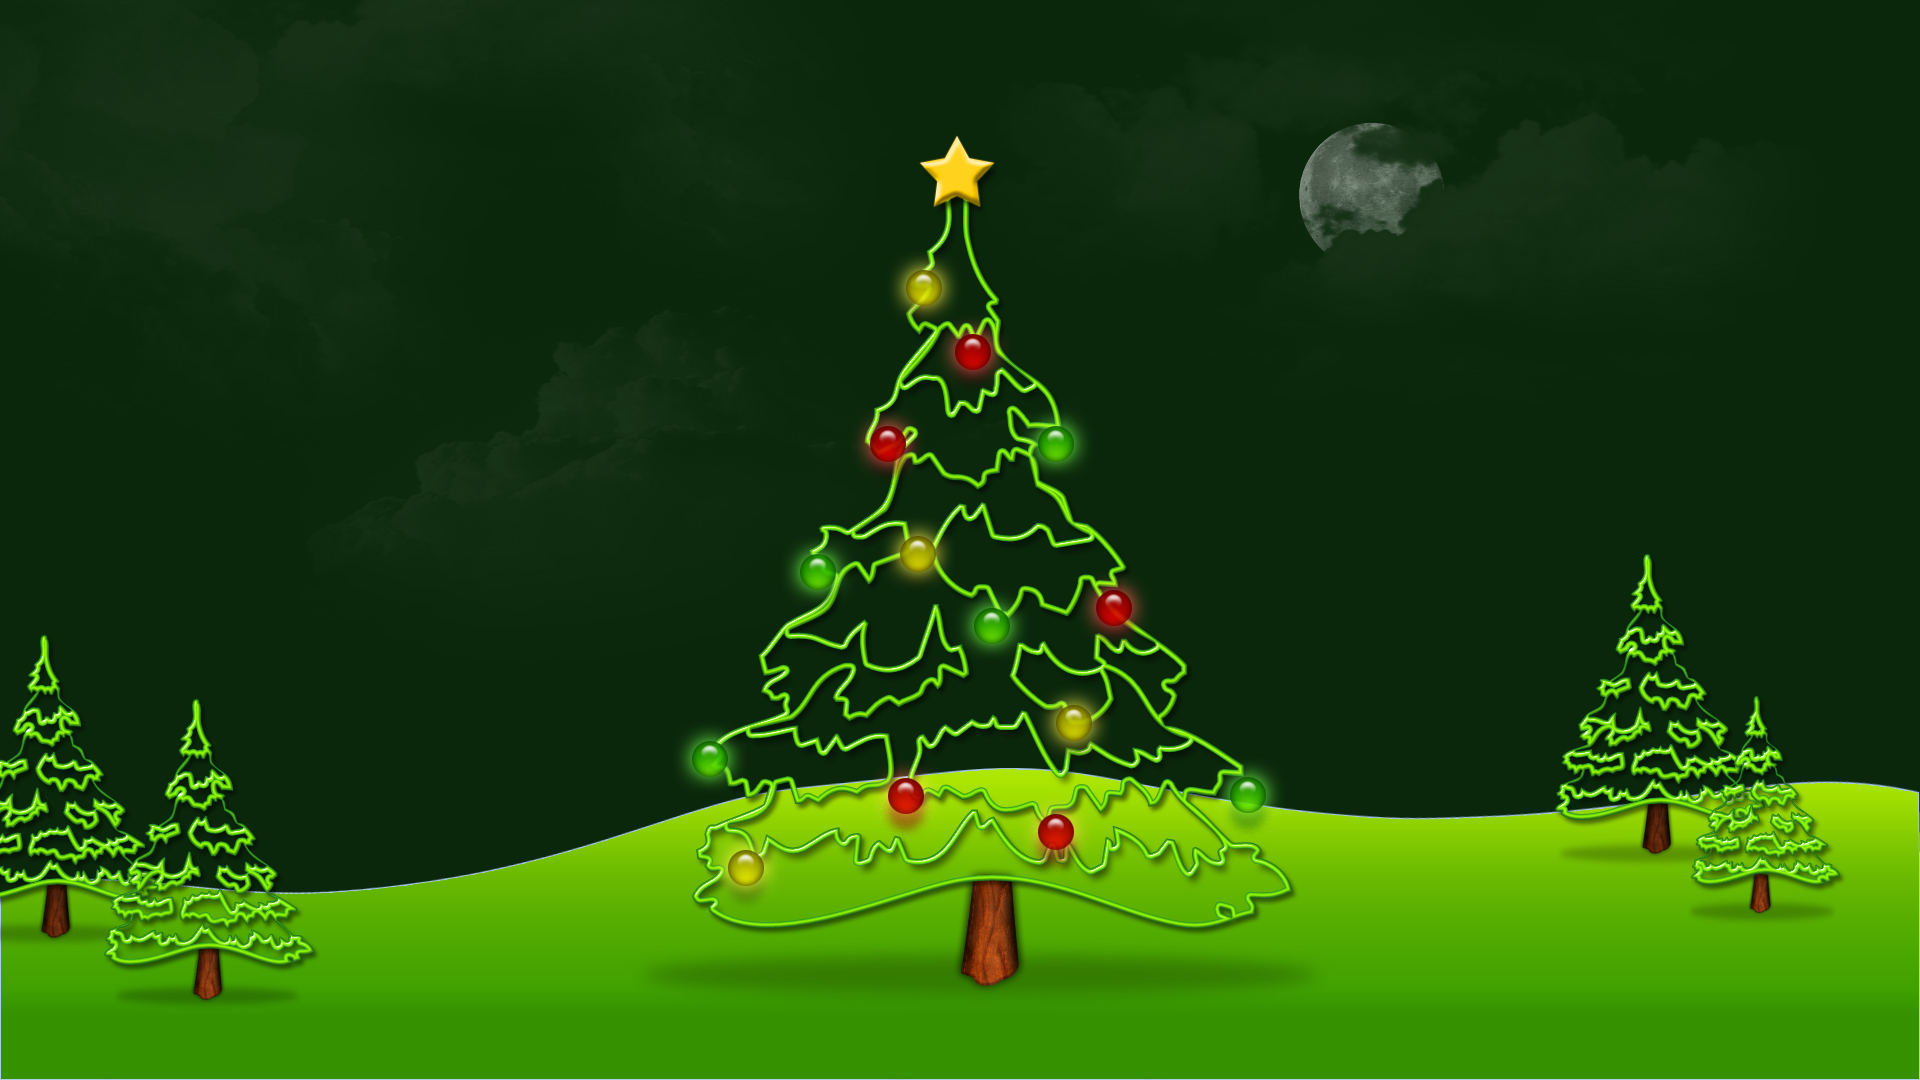 Wallpapers 1920x1080   1920x1080 Christmas Full Hd Wallpapers Free ...